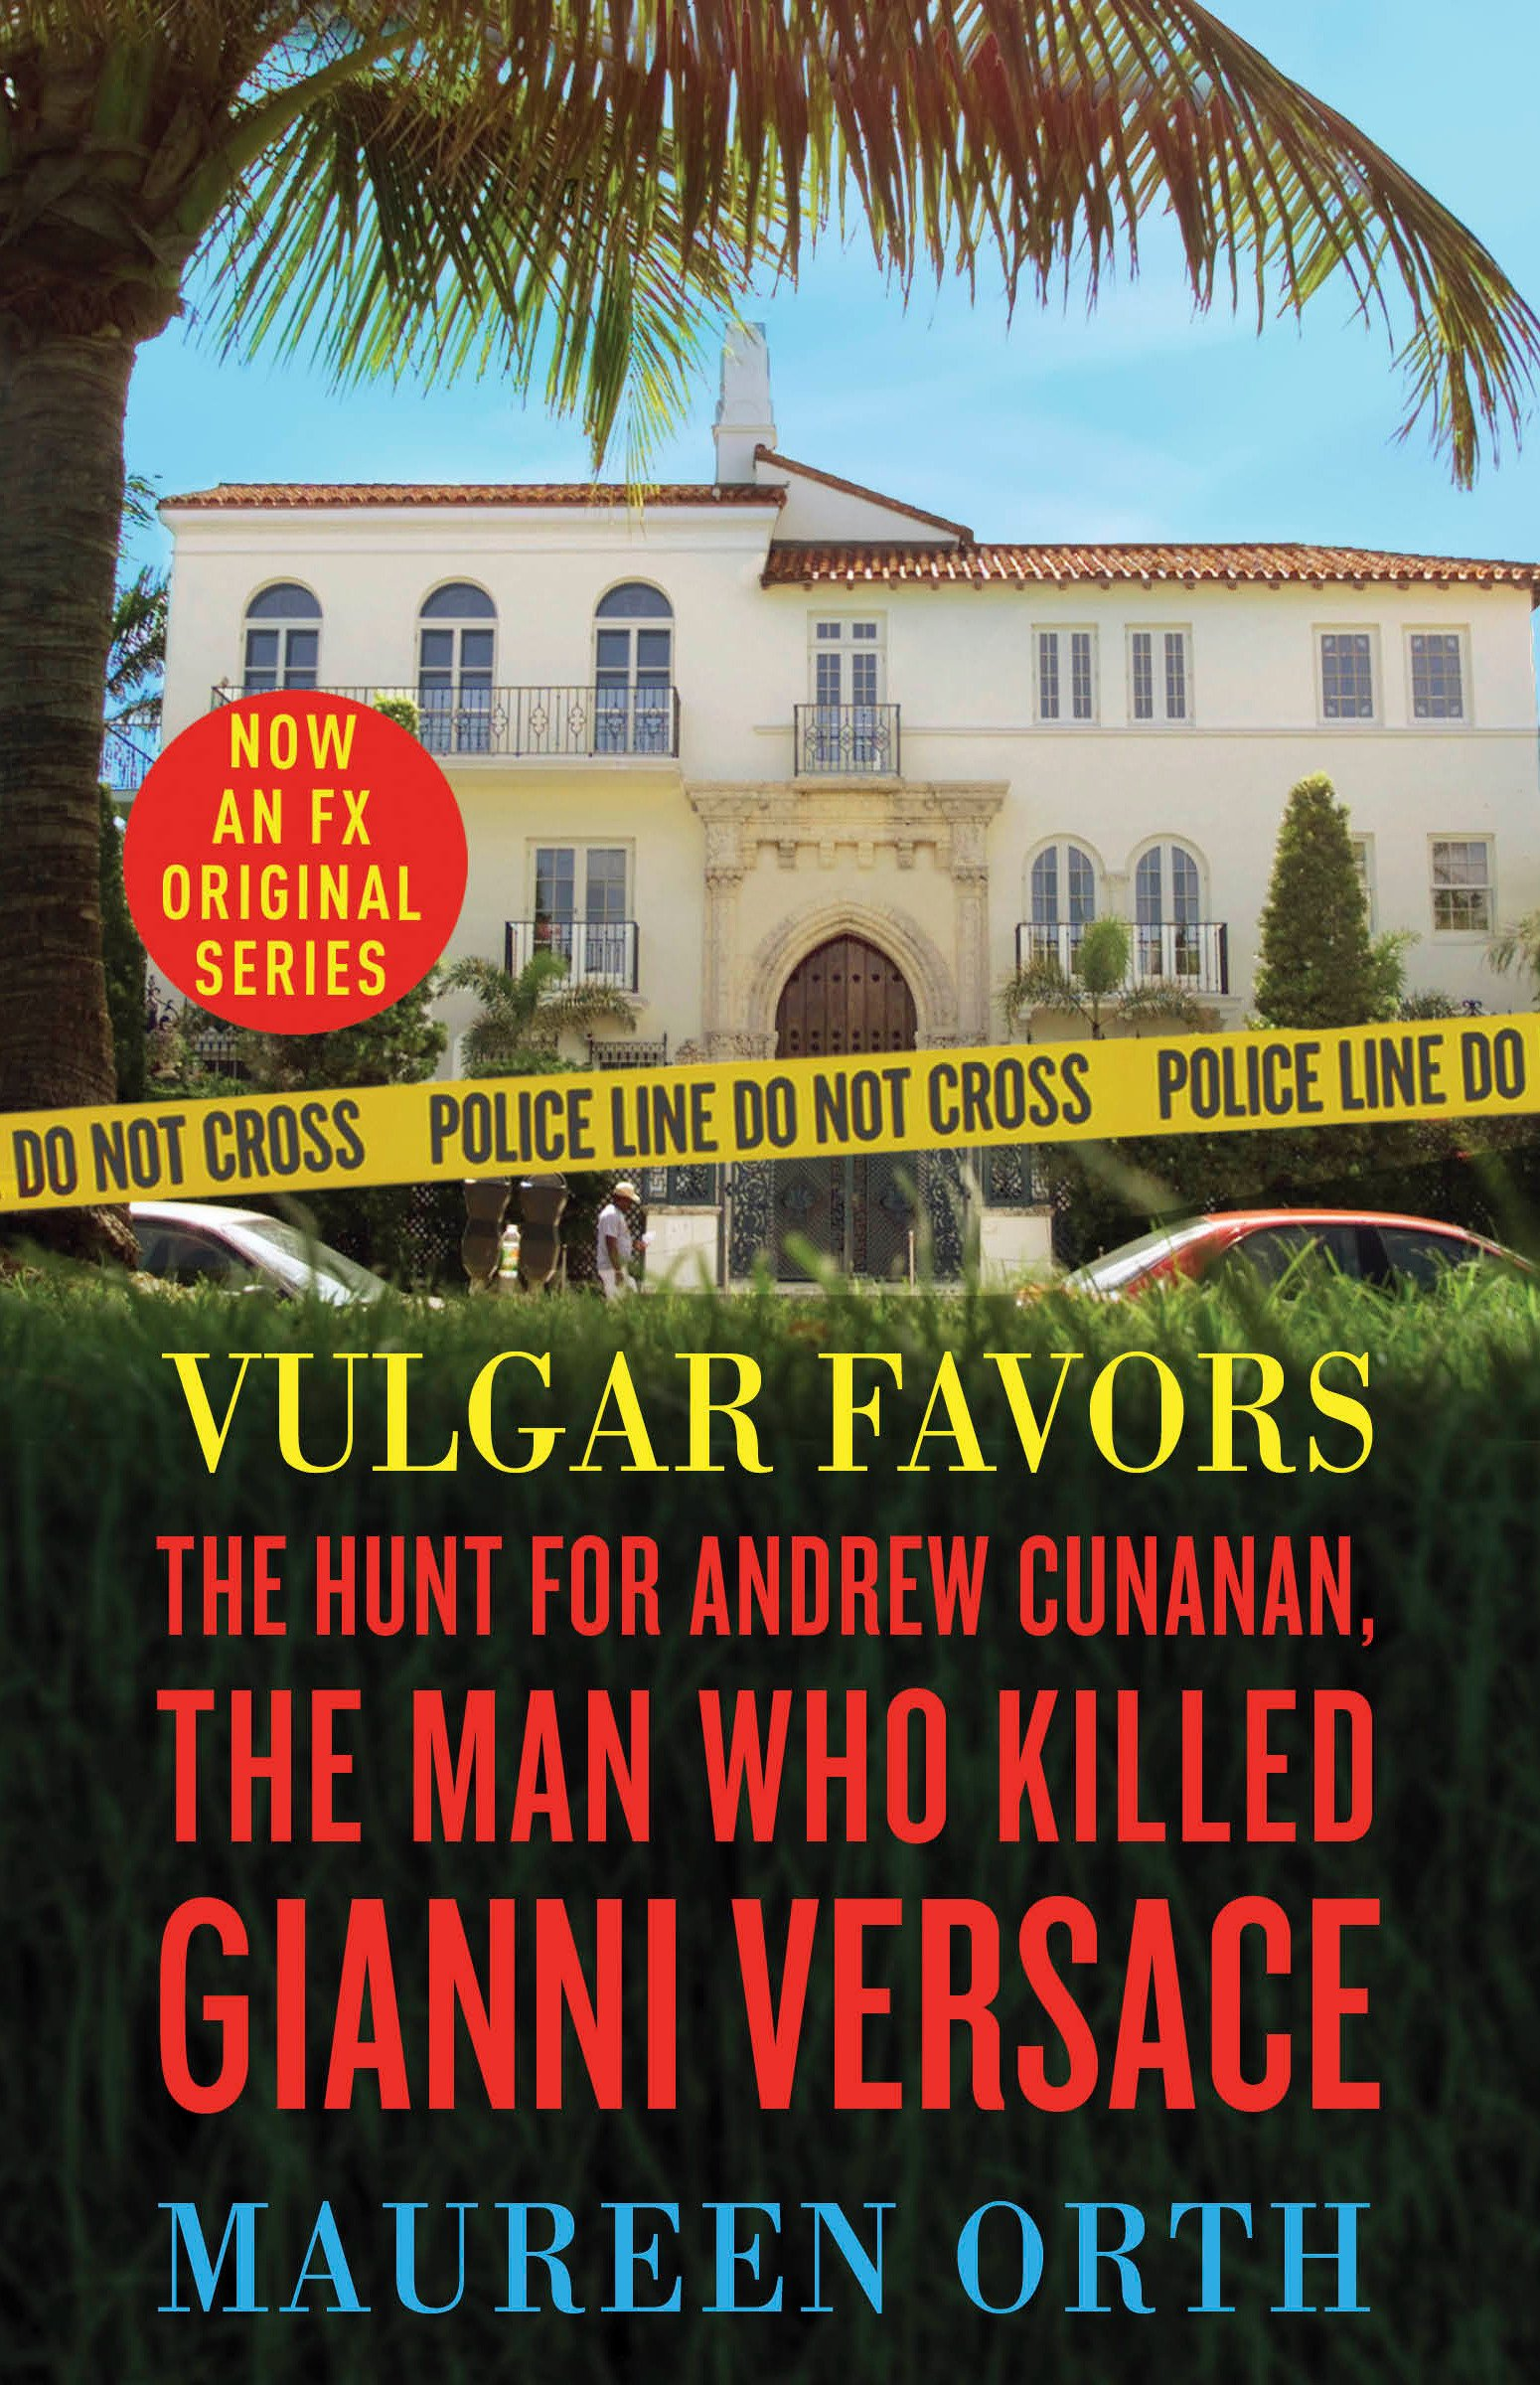 5 Books to Read that Inspired Great Television Series | 4) Vulgar Favors (the book)